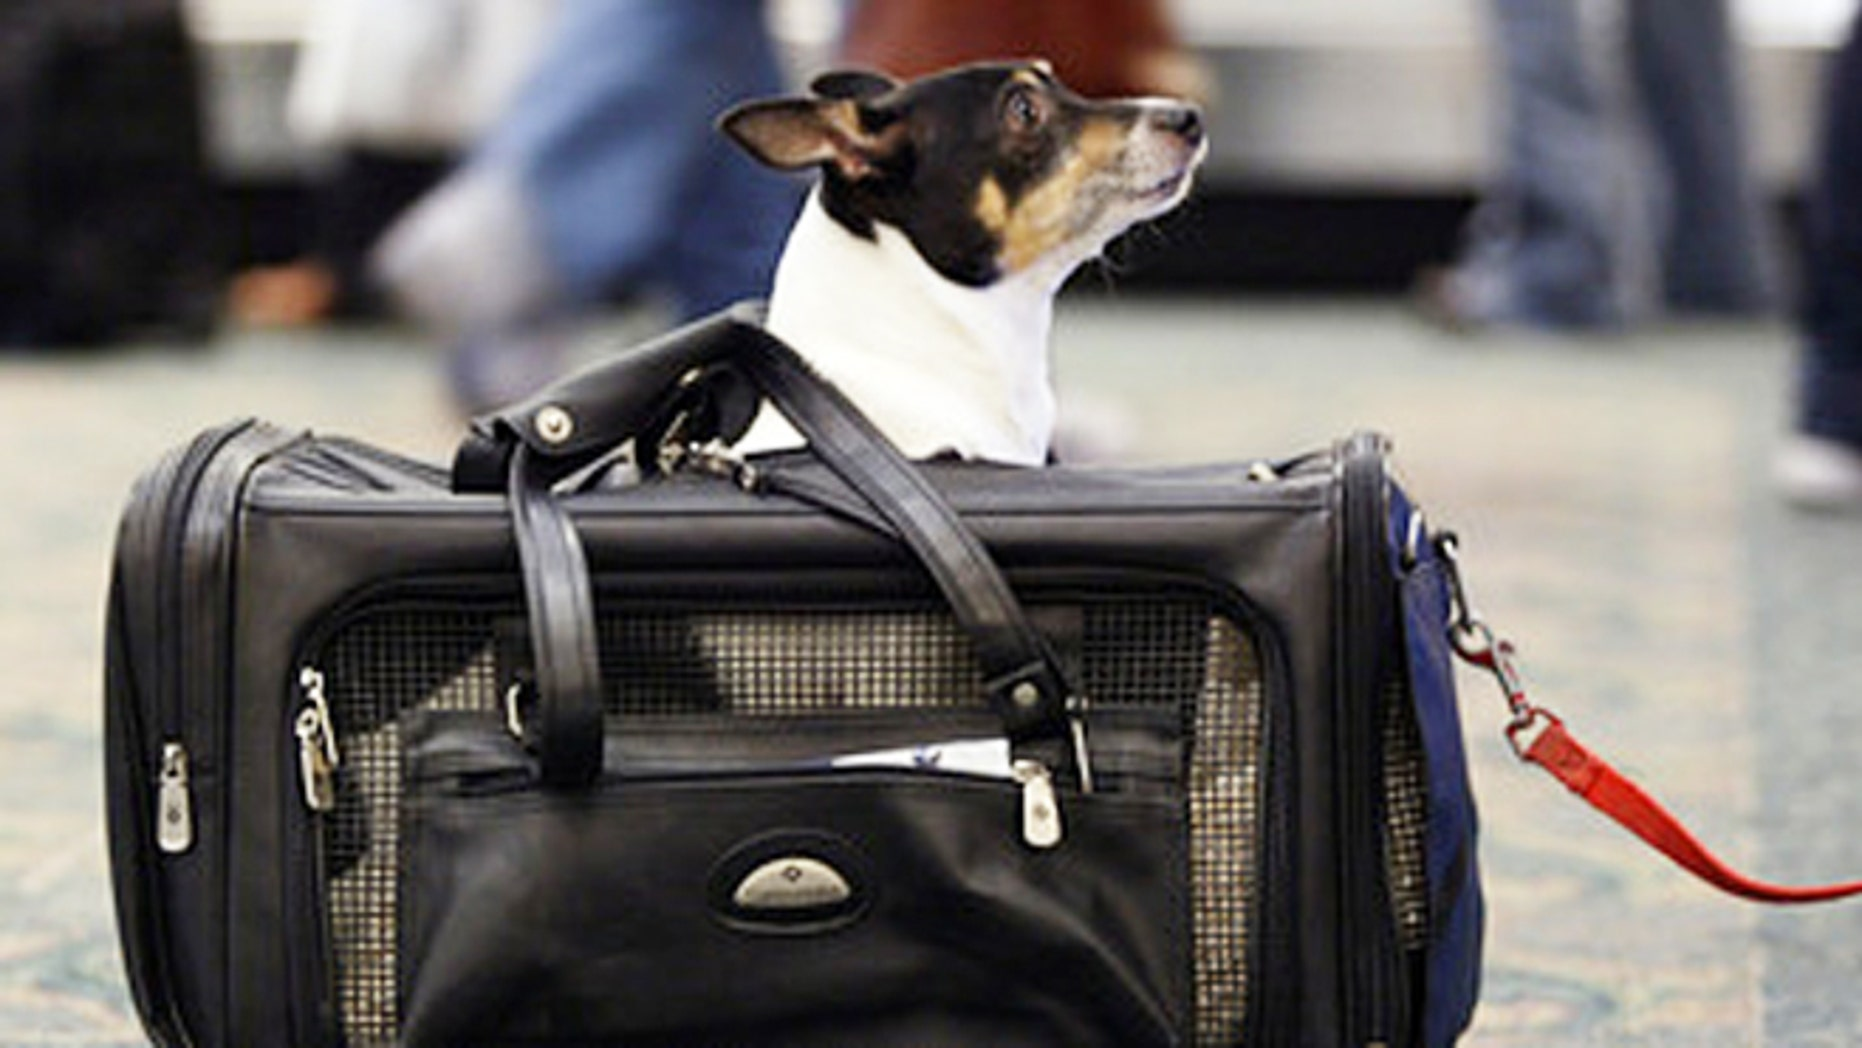 A dog prepares for travel at the airport.